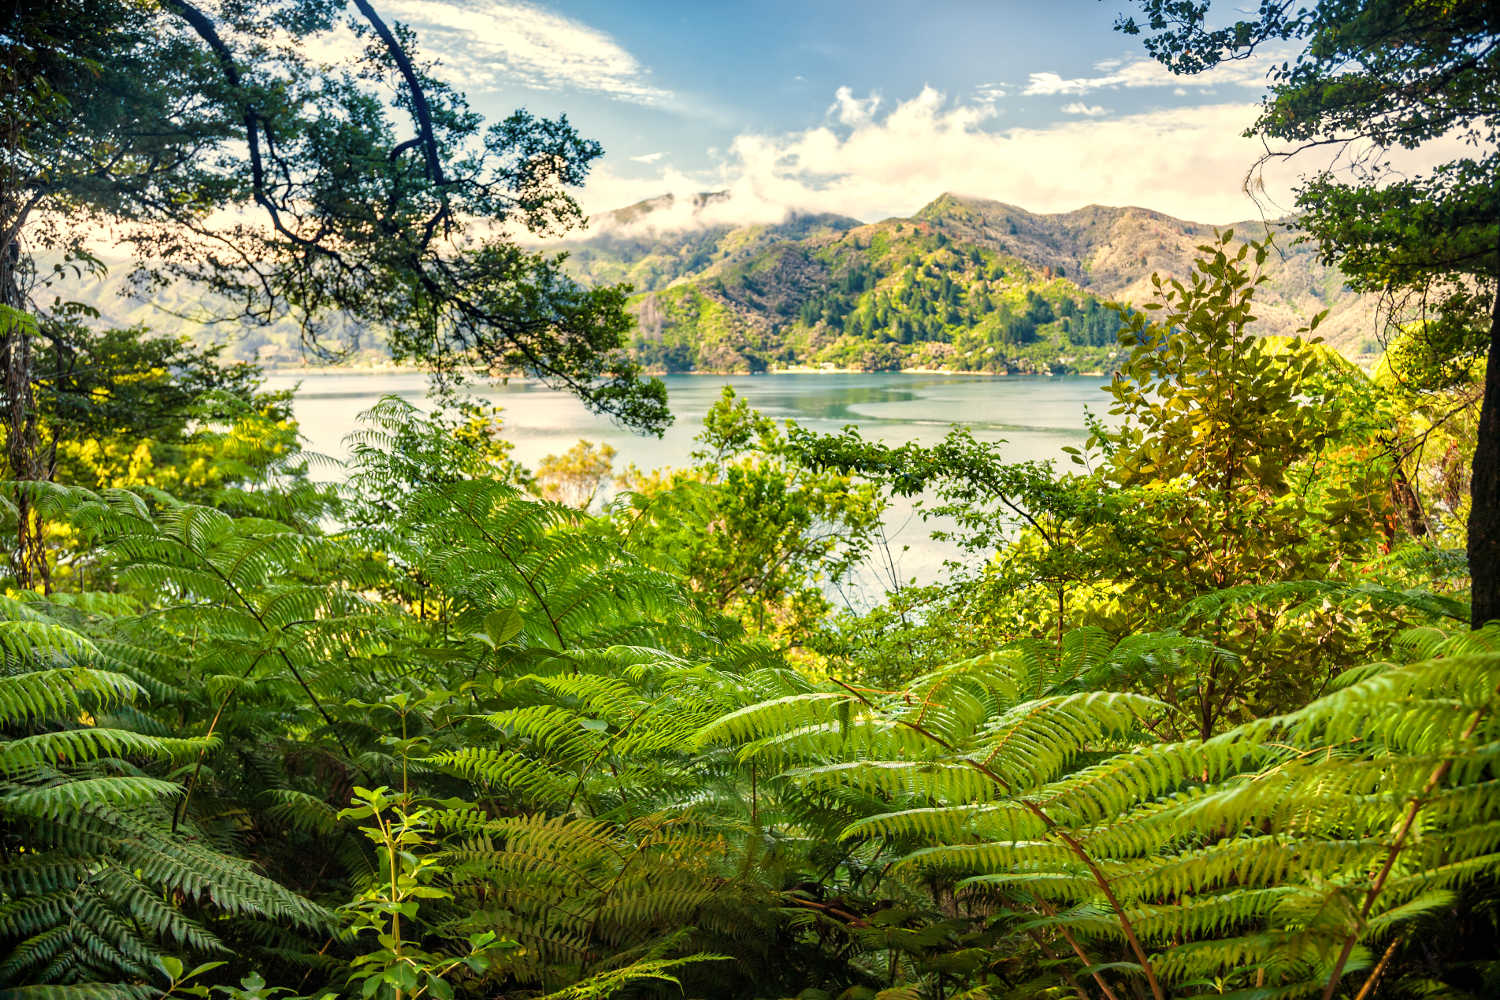 Marlborough Sounds as viewed from the Queen Charlotte Track hiking trail through lush tropical greenery in South Island of New Zealand